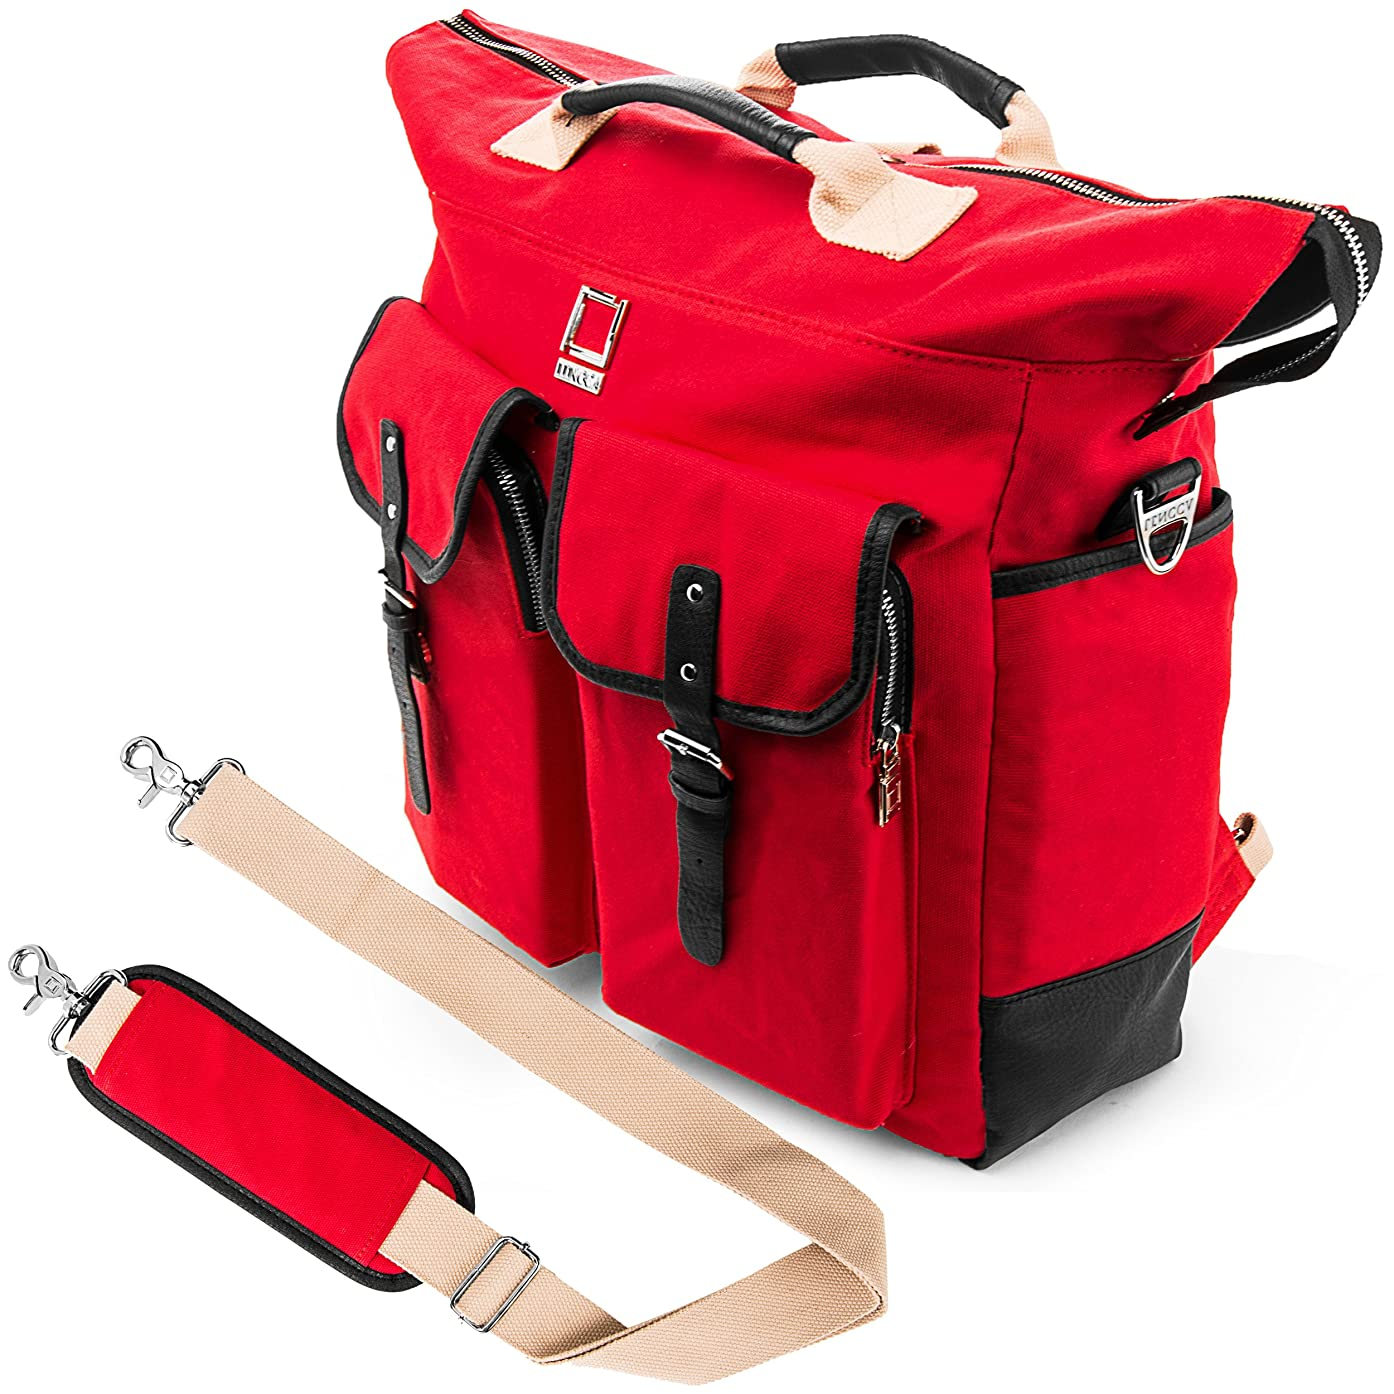 Lencca Universal Hybrid 3 in 1Design Carrying / Tote / Messenger / Crossbody / Backpack / Shoulder Bag for Apple Macbook Pro 15.4 / Acer / ASUS / Dell / Samsung / HP / Lenovo / Toshiba / MSI fit up to 15.6 inch Notebook / Google Chromebook / Ultrabook / Laptop (Red)